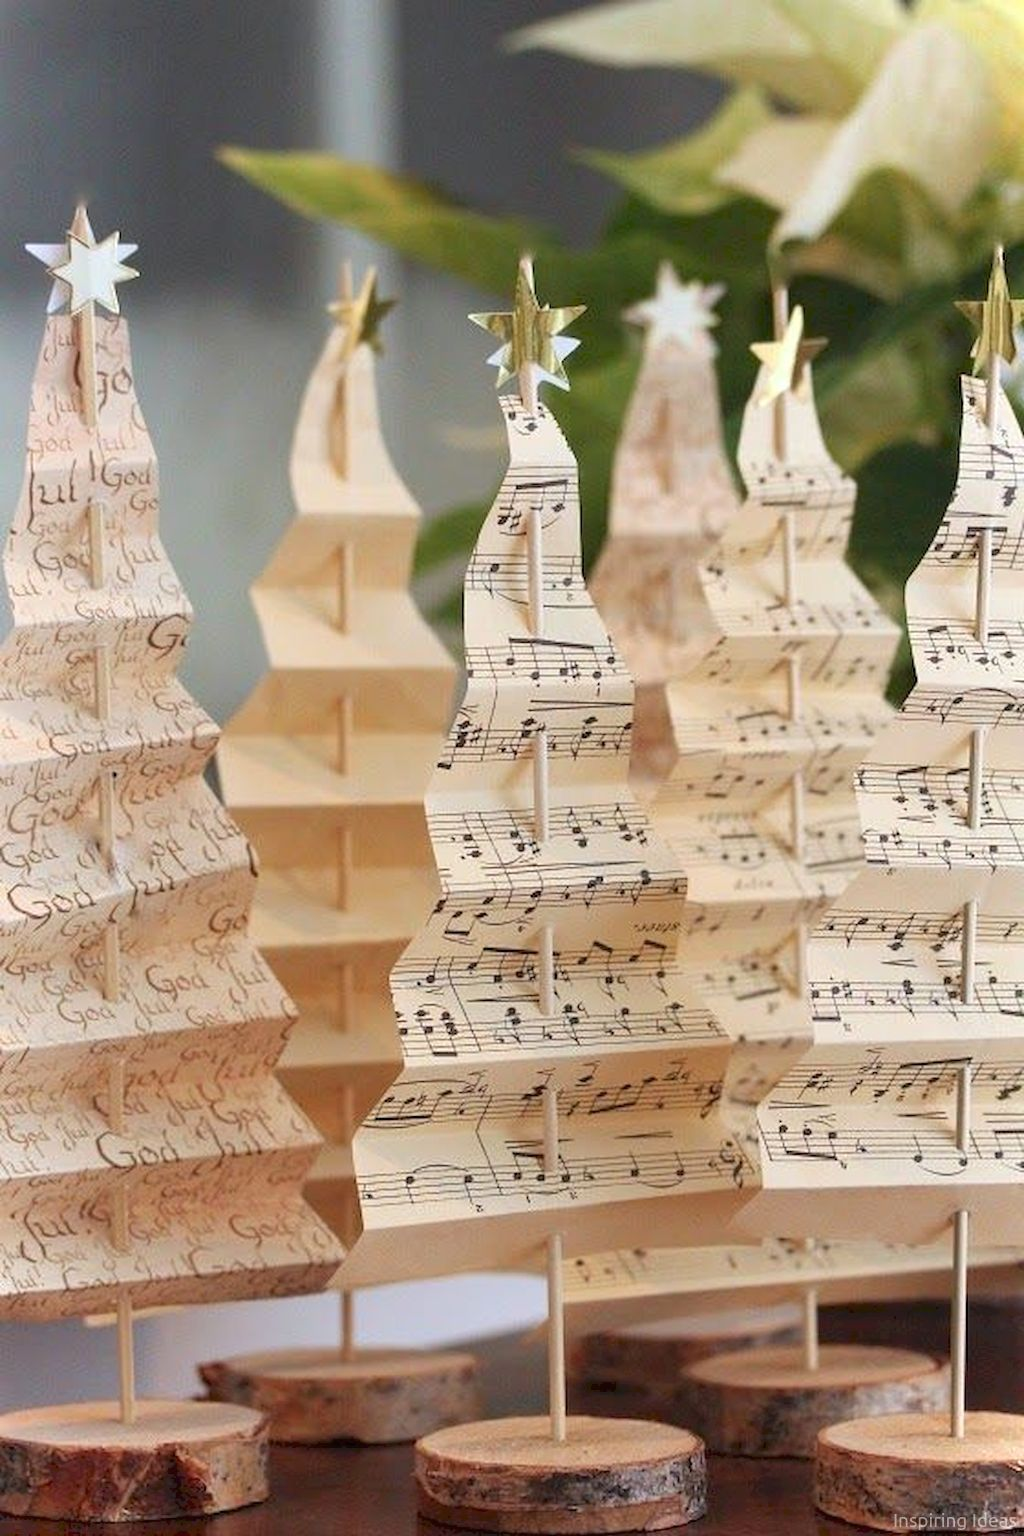 Let your room sing create these magical diy music sheet christmas trees everyone will give you  standing ovation also easy decorations ideas on budget pinterest rh za